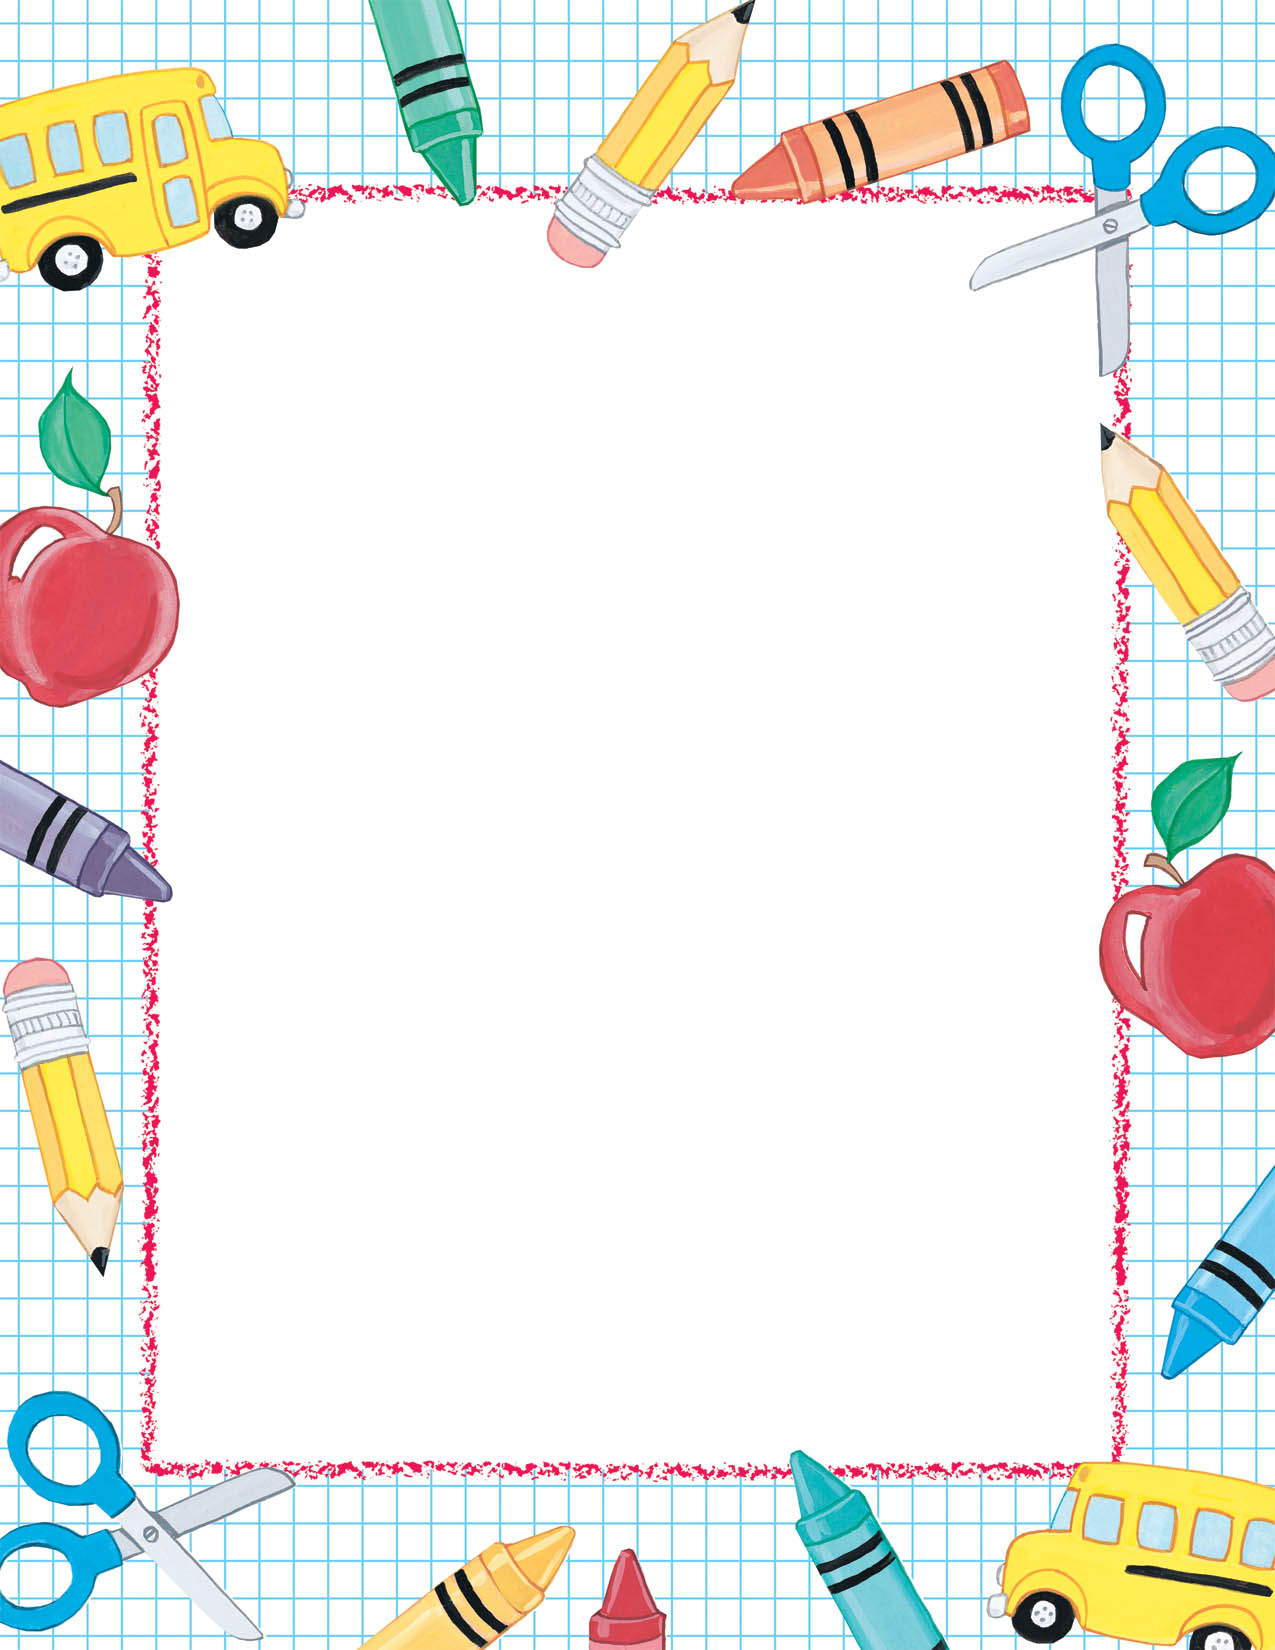 image about Free Printable Borders for Teachers known as 25+ Instructor Web page Border Landscape Illustrations or photos and Suggestions upon Expert